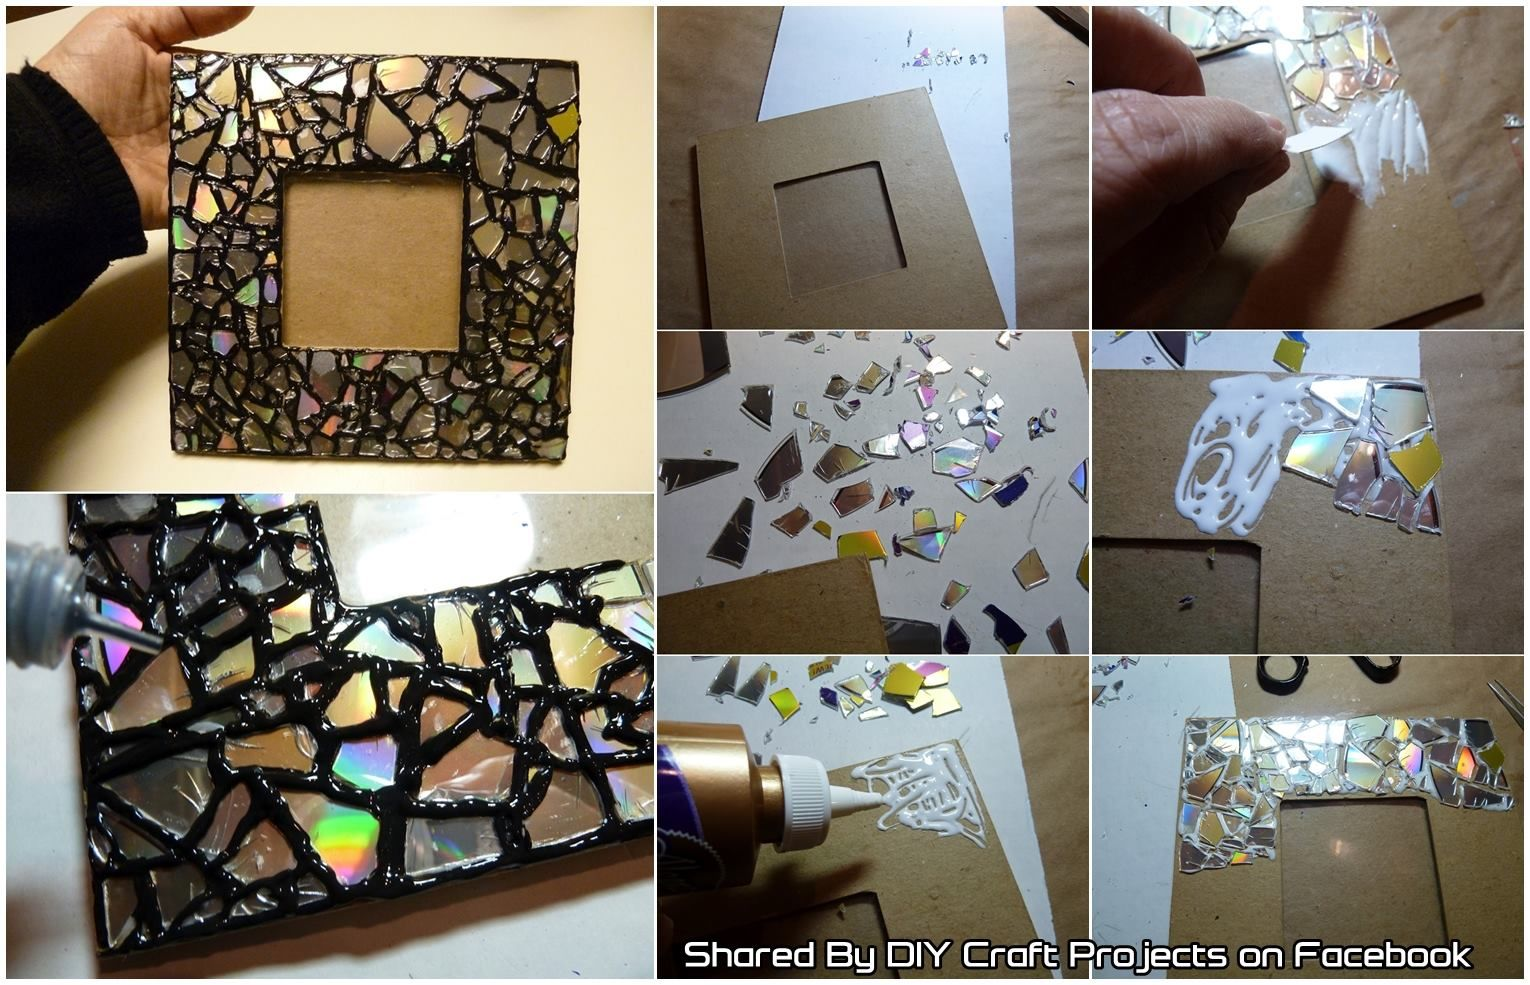 Diy recycled cd mosaic photo frame pictures photos and - Marcos para fotos manualidades ...